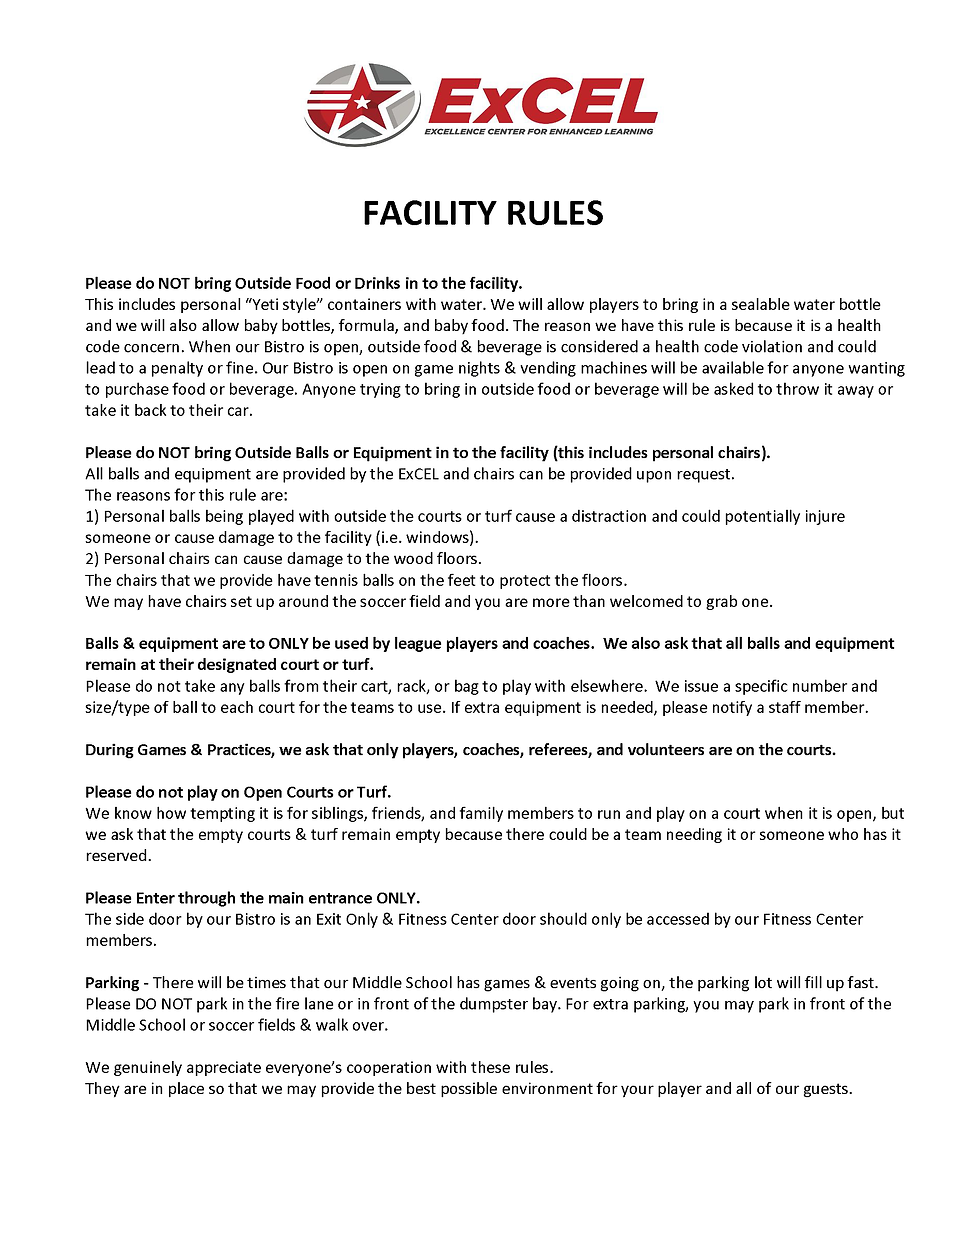 FACILITY RULES - ExCEL.png